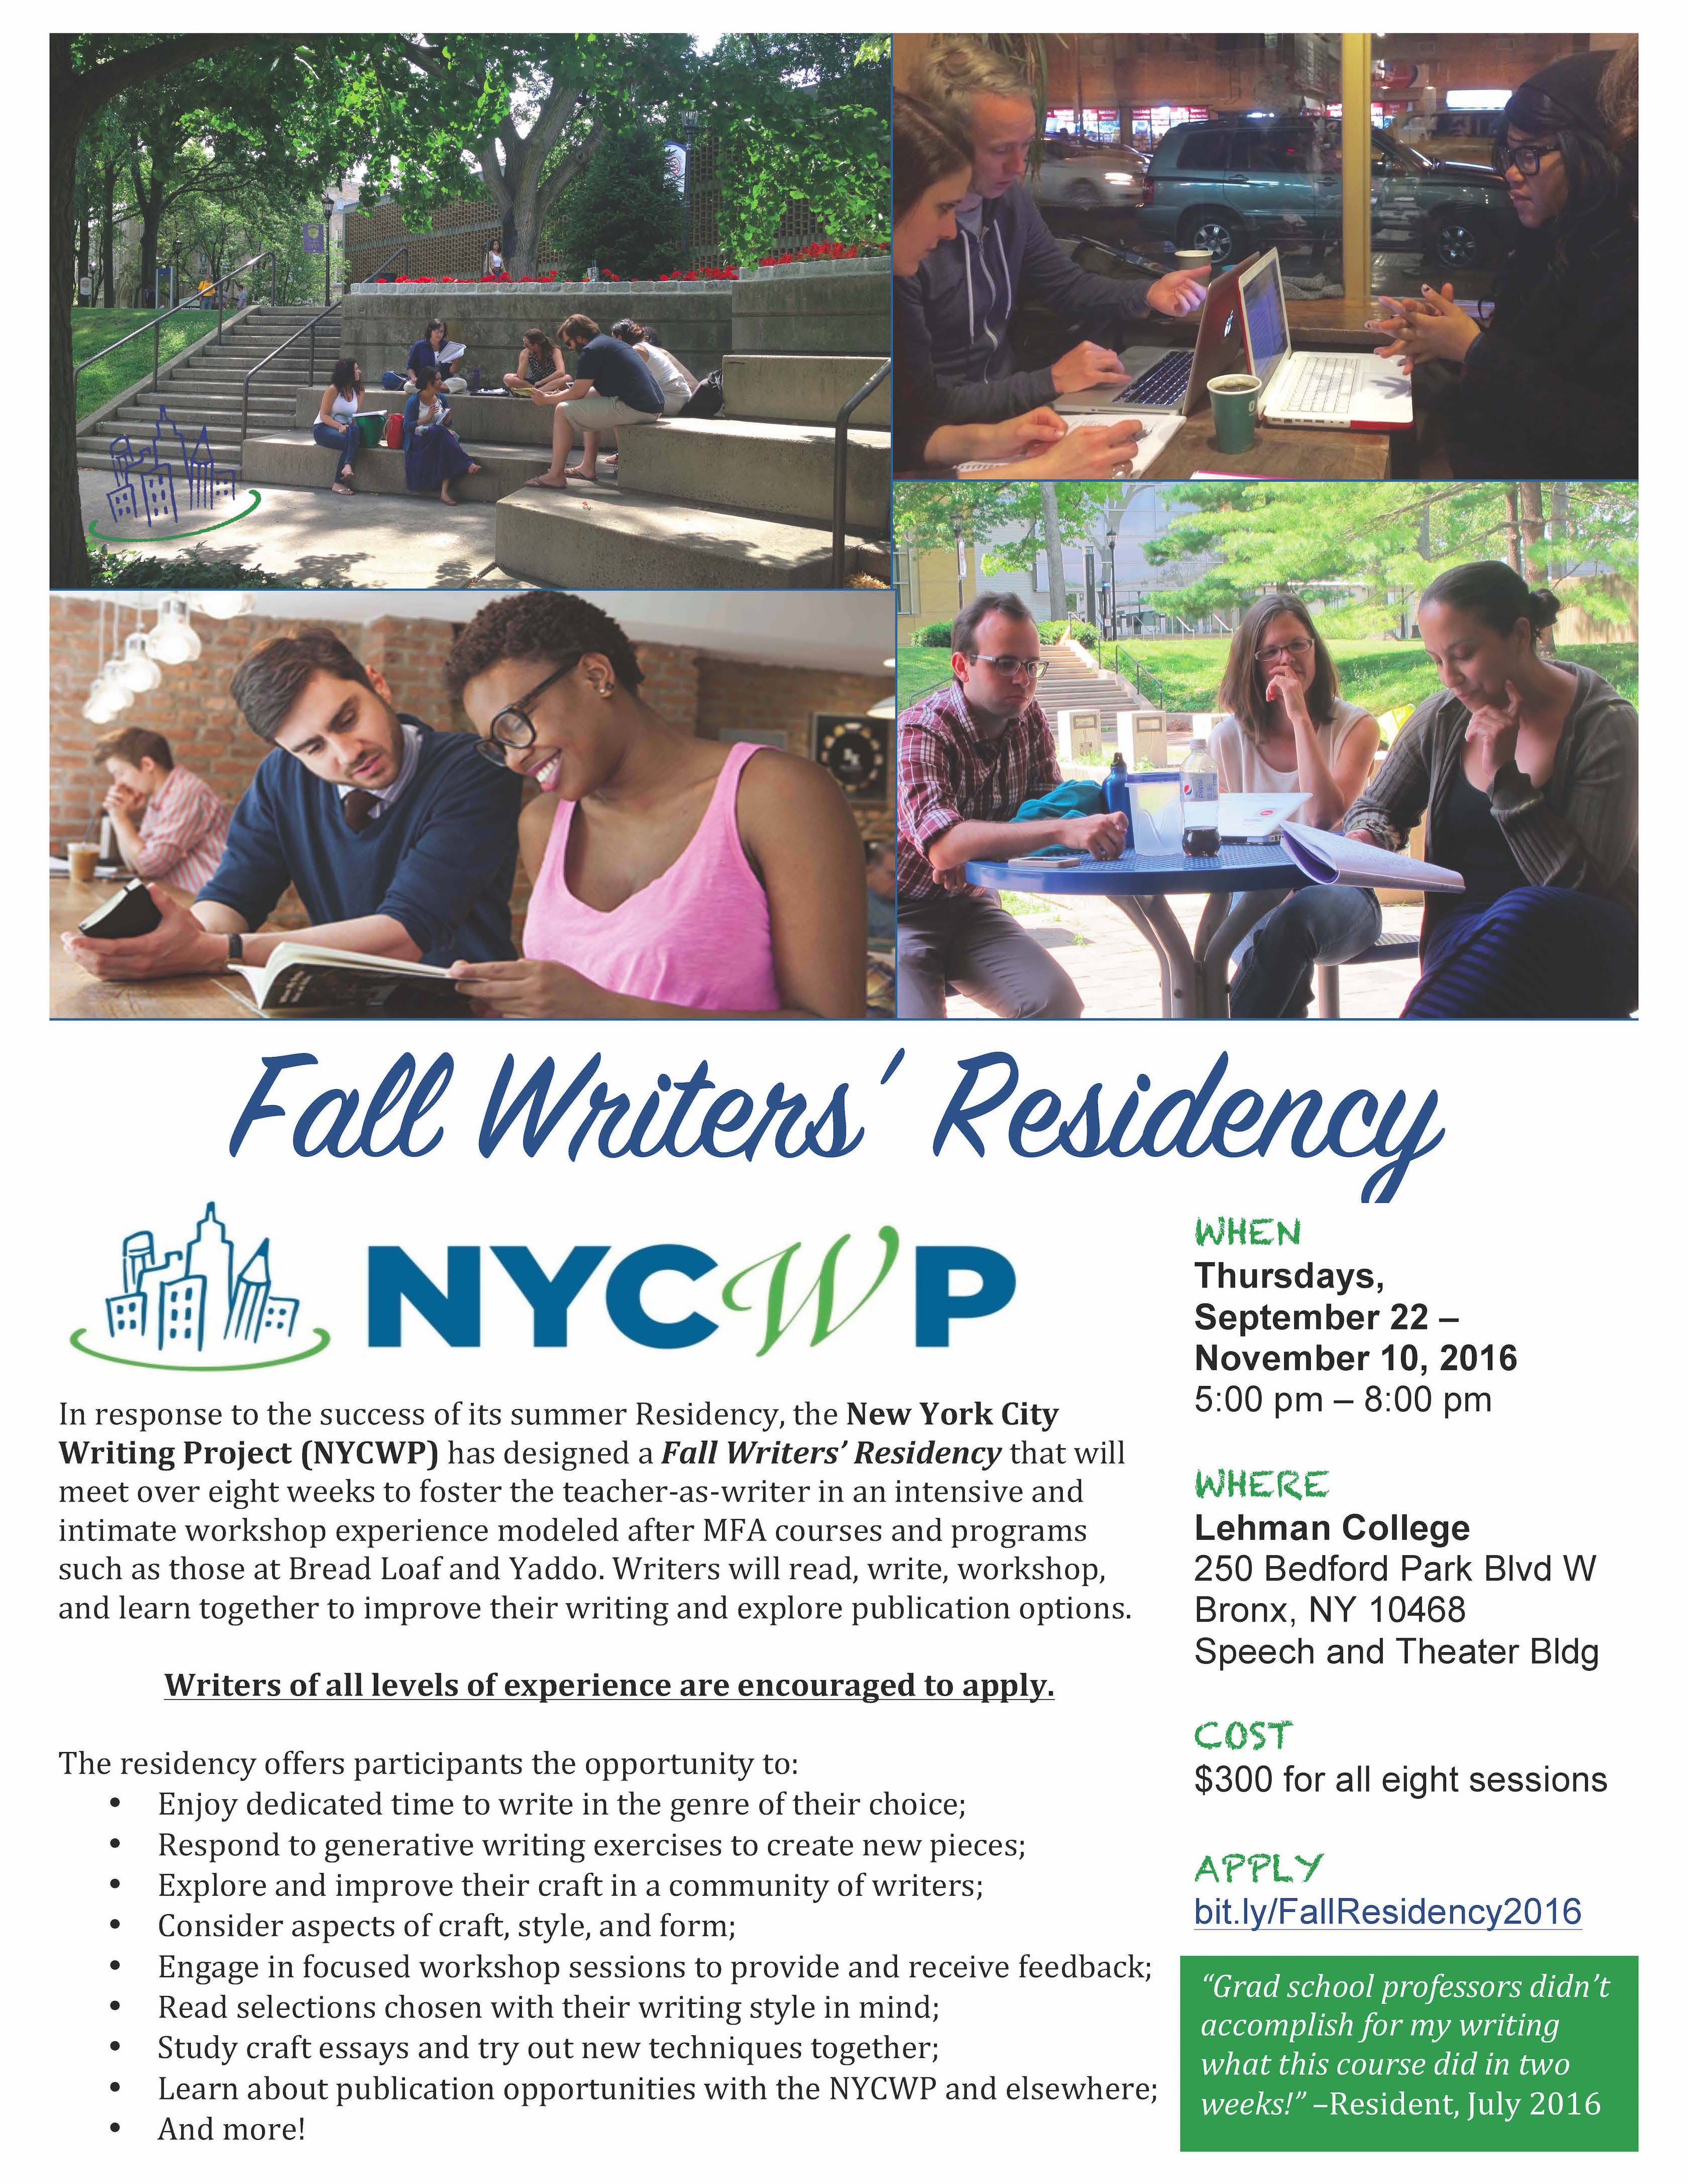 new york writing project The capital district writing project (cdwp) is a community of k-college  educators working to enhance the  university at albany - state university of  new york.